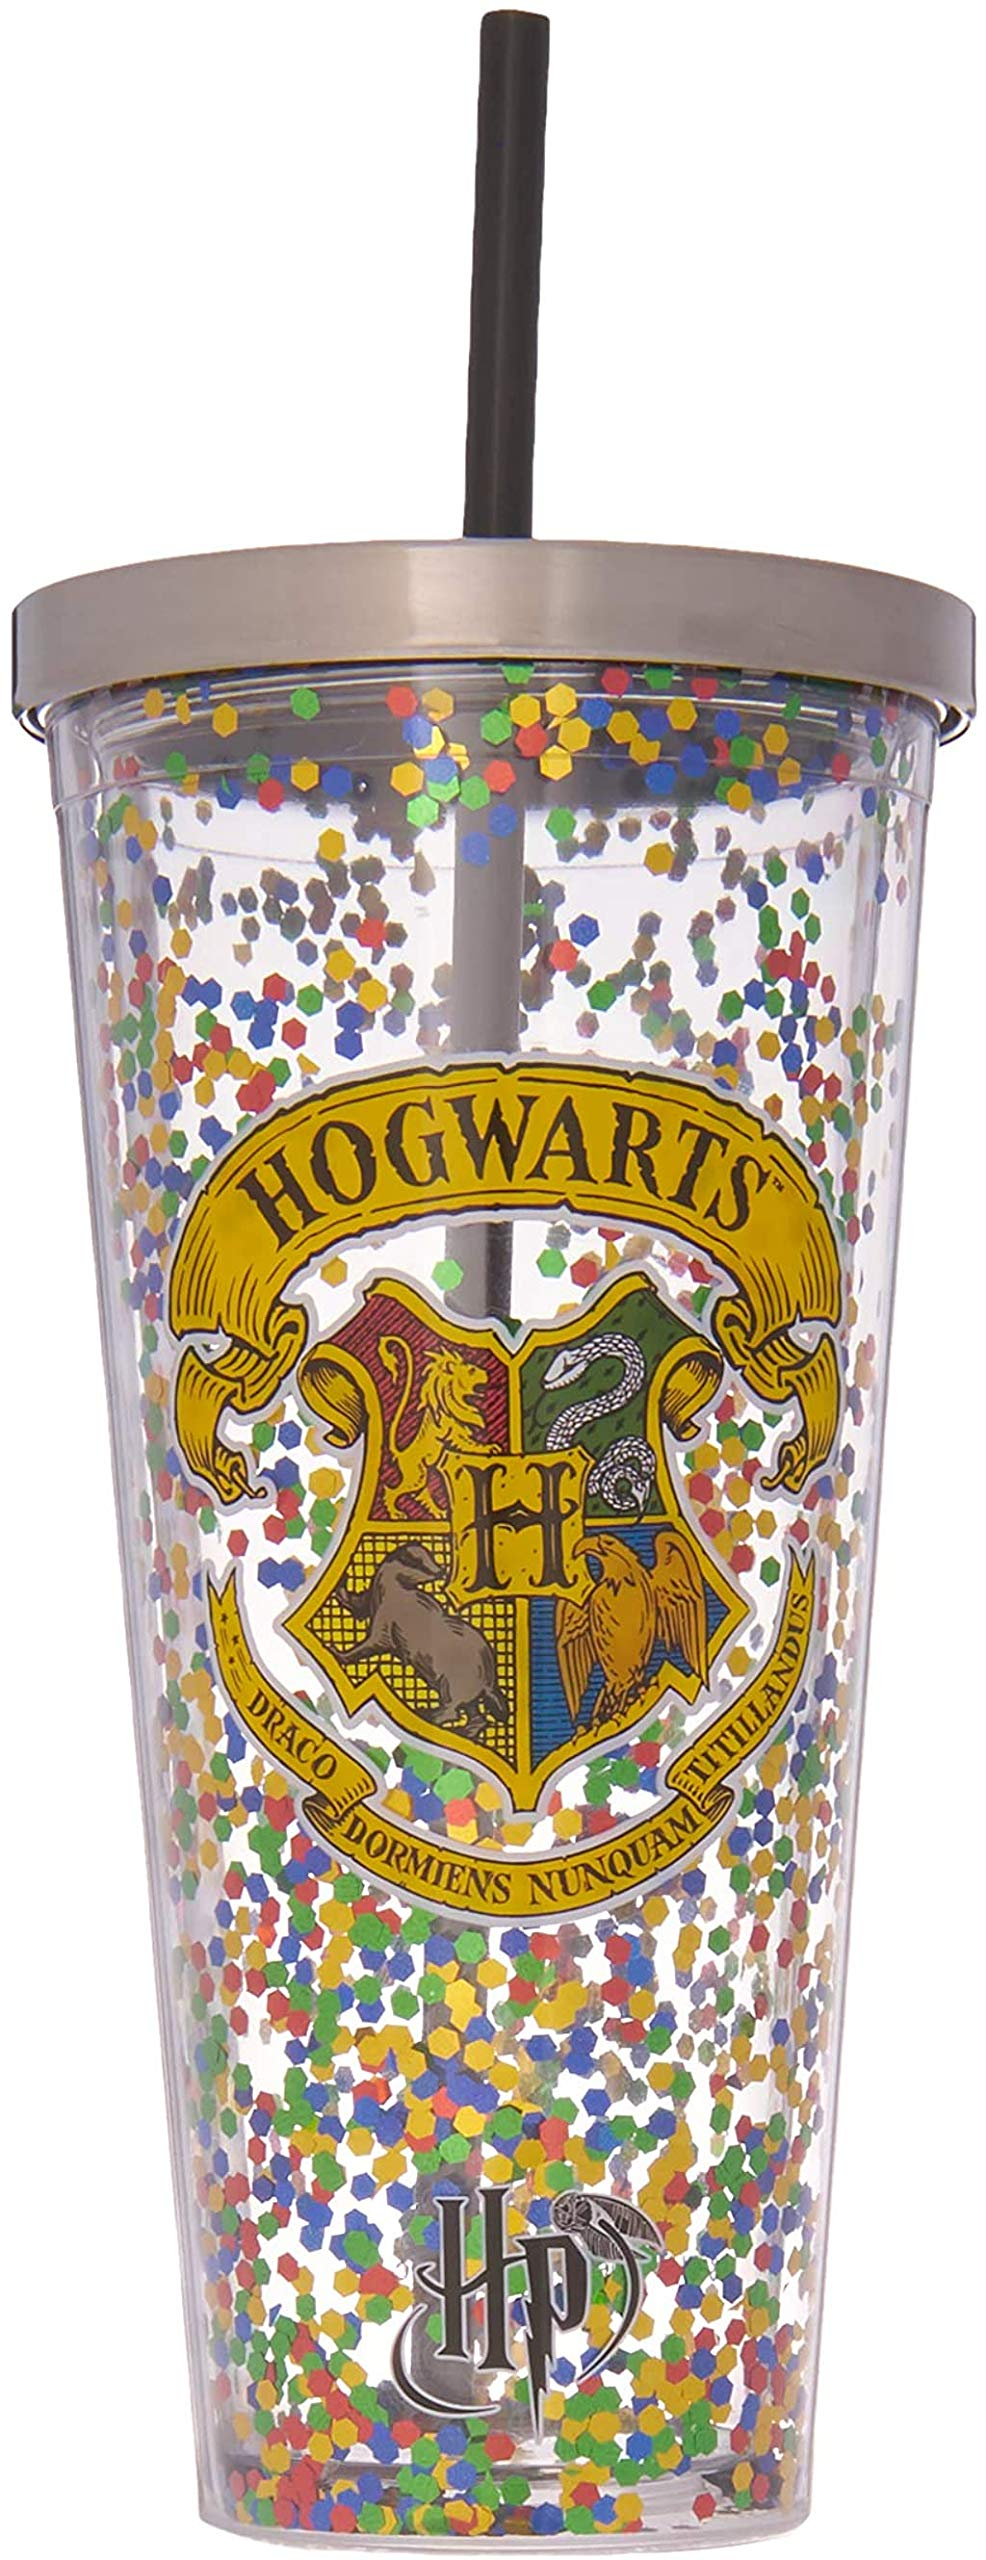 Spoontiques - Harry Potter Tumbler - Hogwarts Glitter Cup with Straw - 20 oz - Multicolored